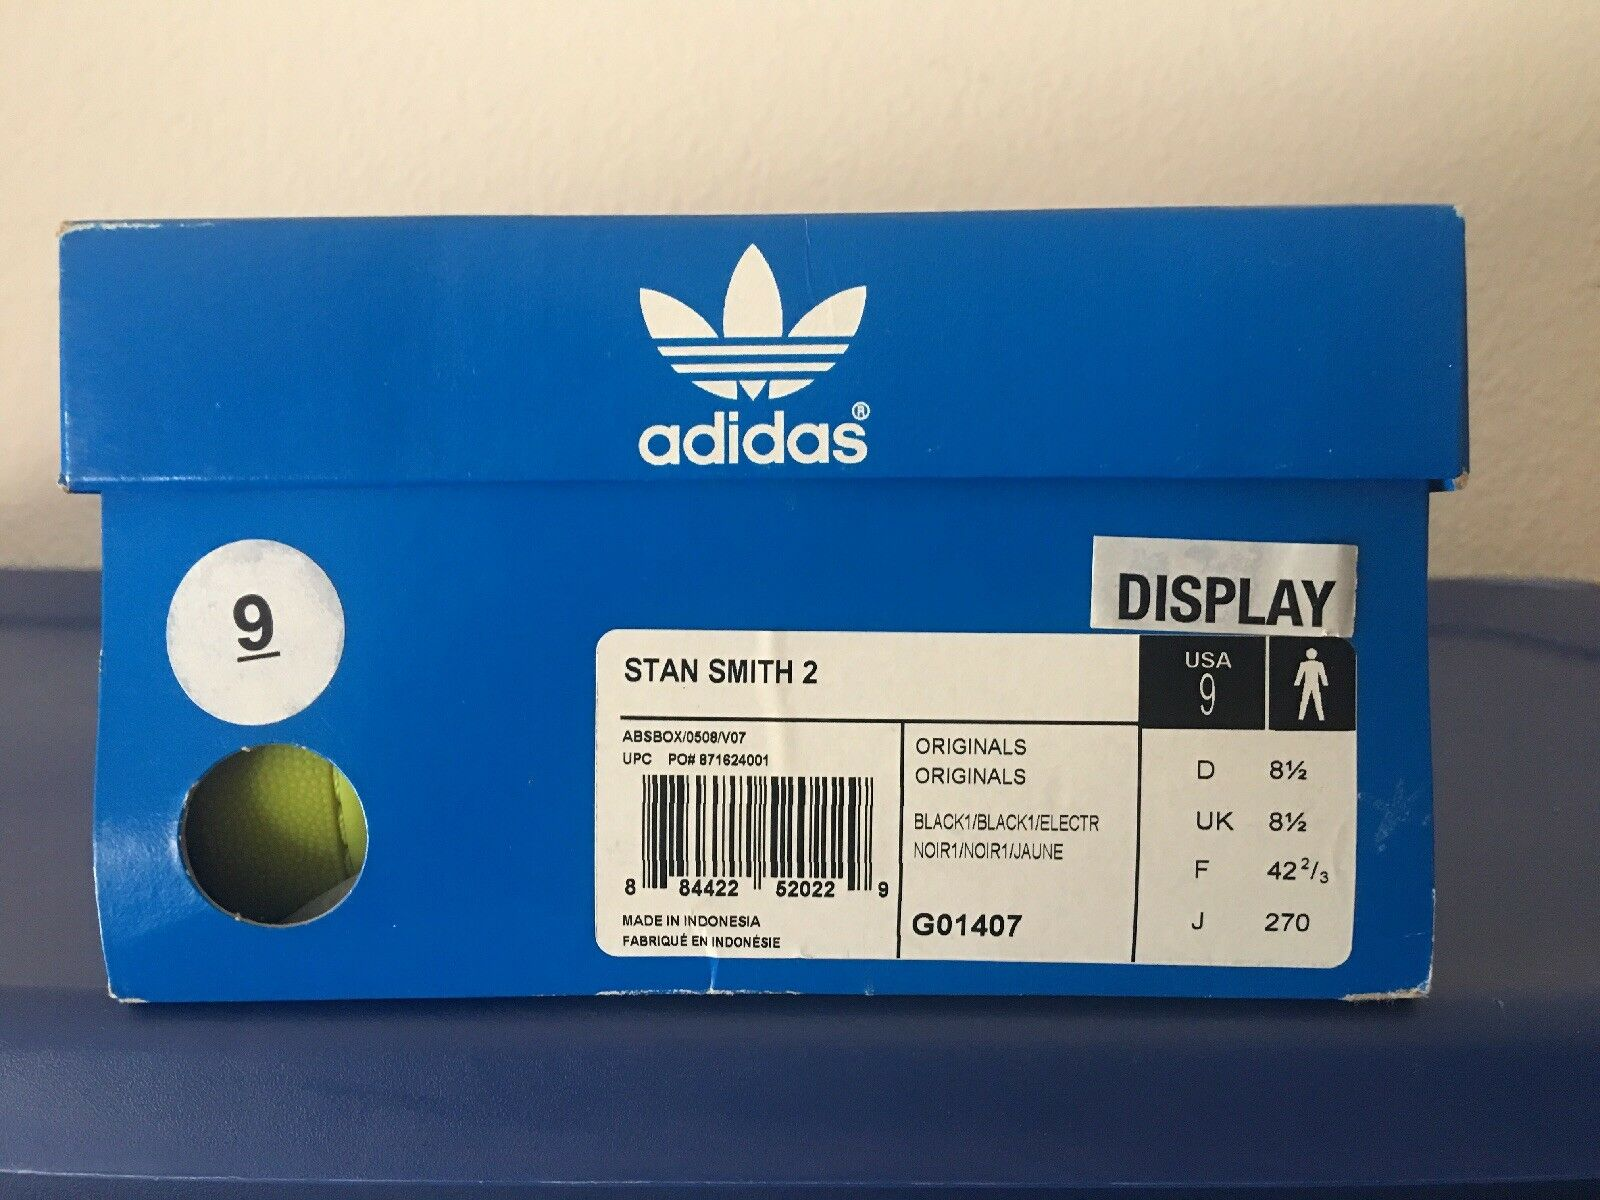 Adidas Originals Stan Smith g01407 de Limited color / duro de g01407 encontrar comodo d026f8